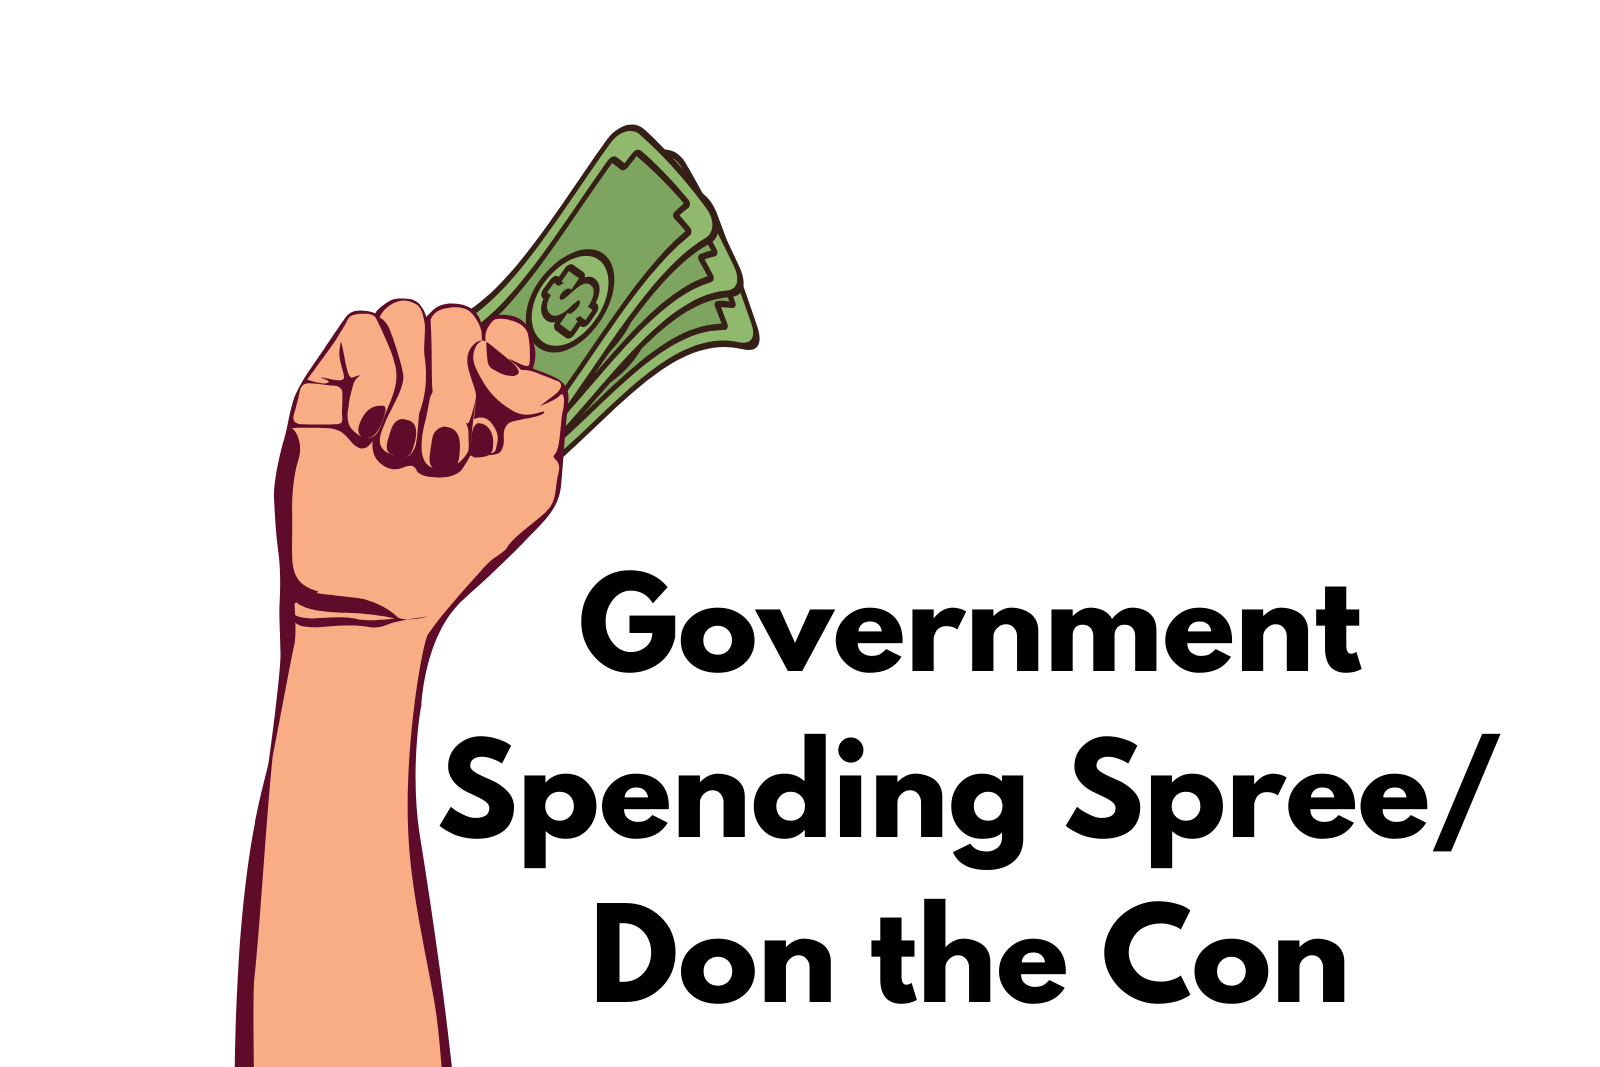 Ep 2. Government Spending Spree/Don the Con